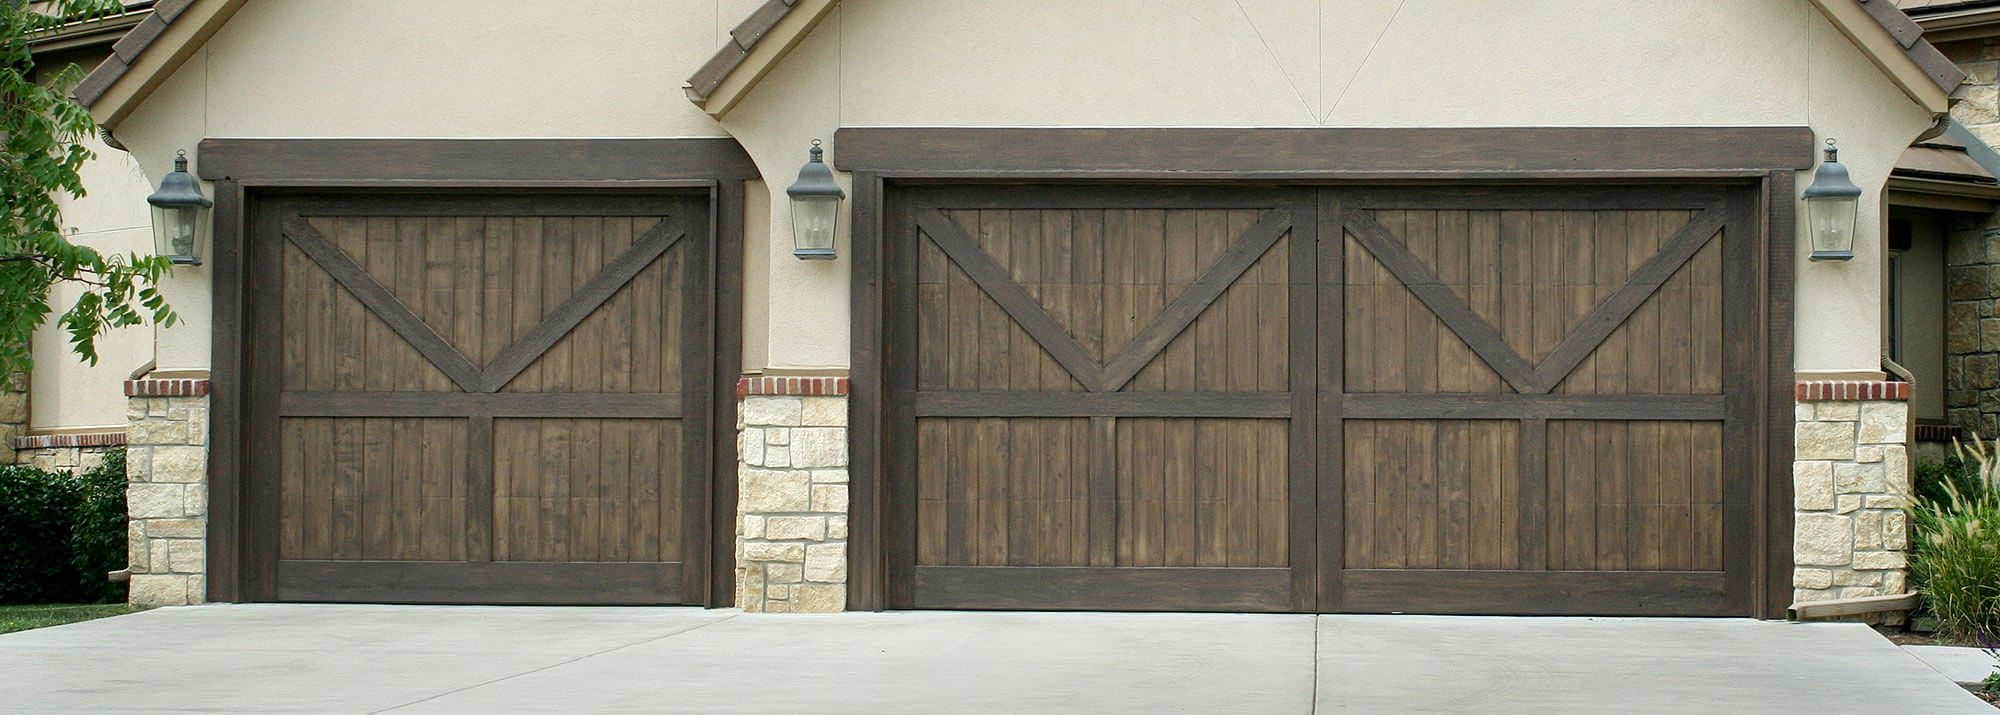 Wichita Garage Doors Reddi Overhead Door Company